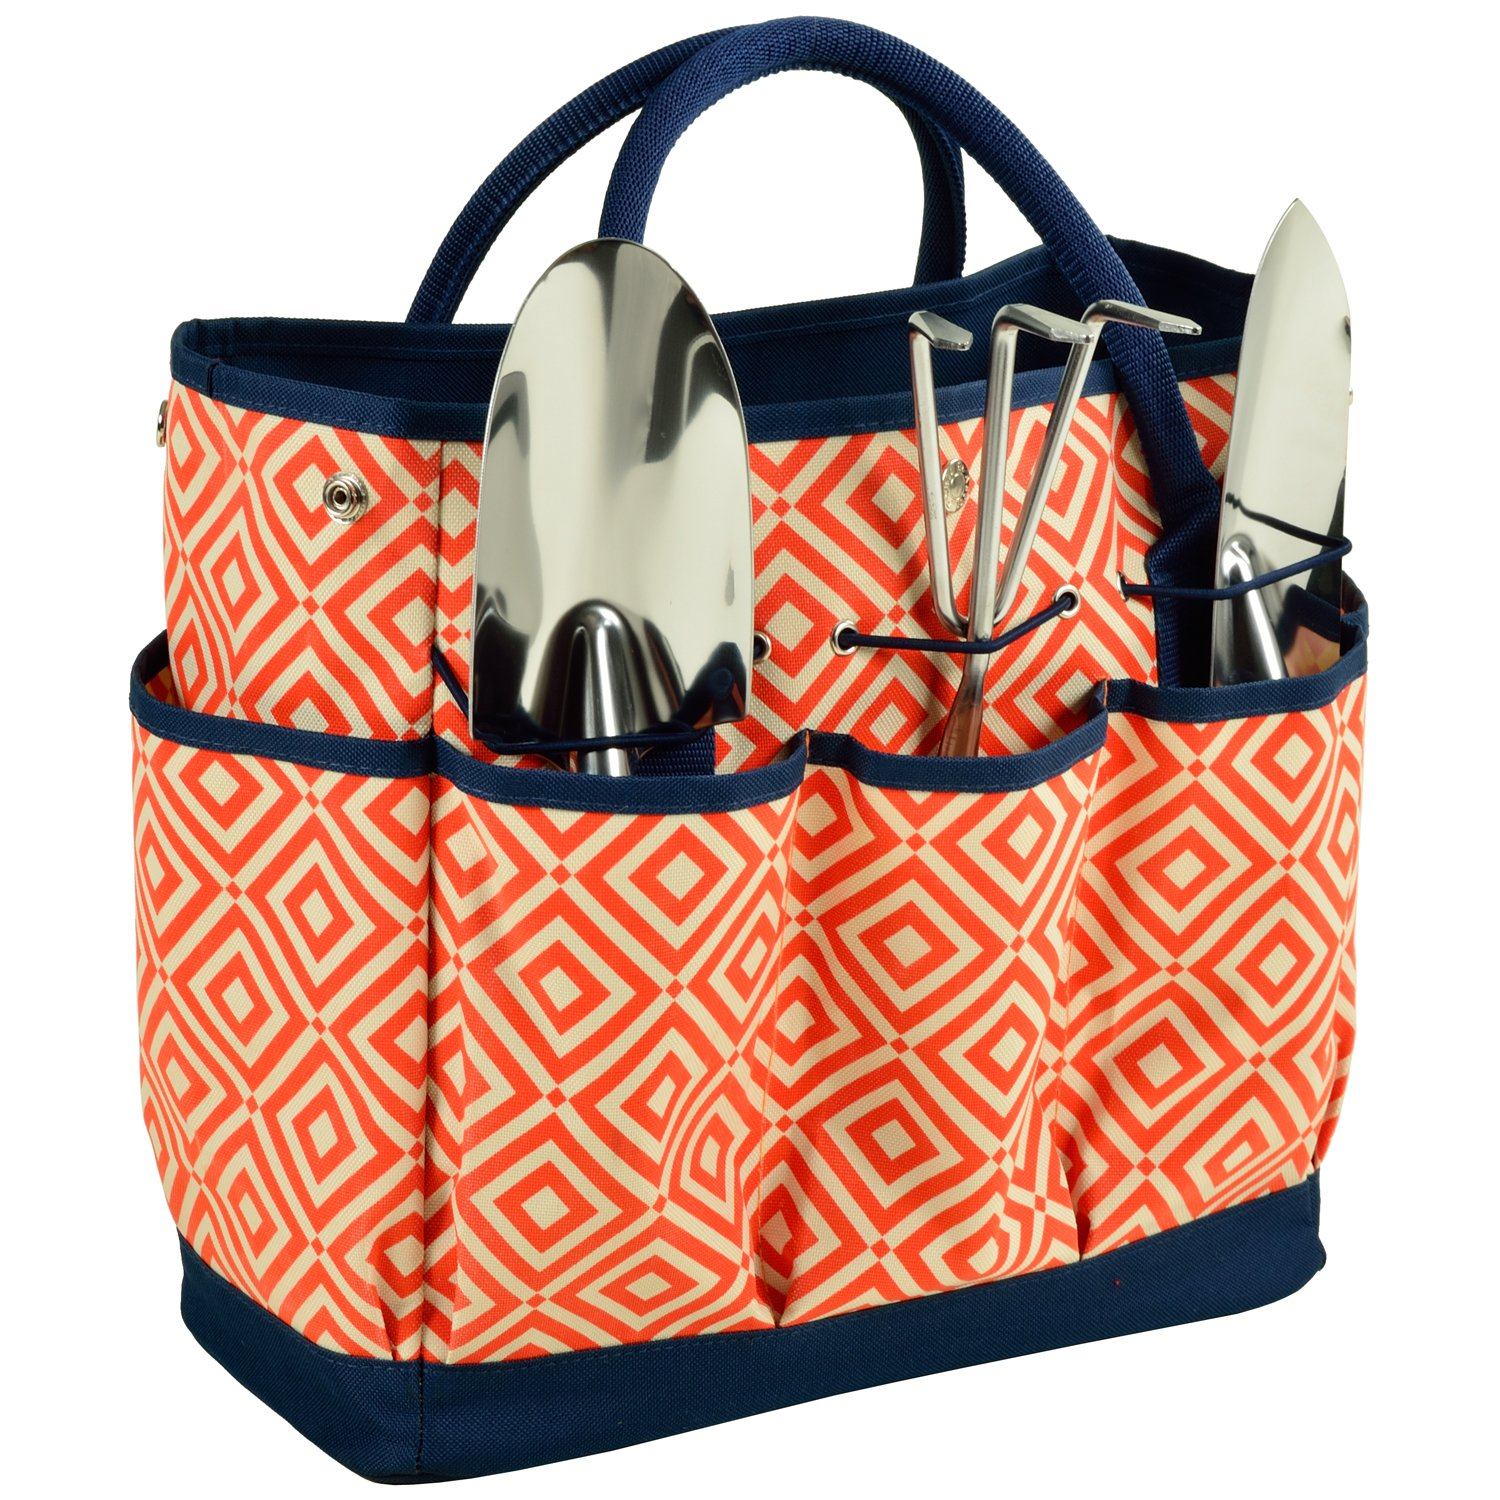 Picnic at Ascot Gardening Tote with 3 Stainless Steel Tools- Designed & Assembled in the USA by Picnic at Ascot